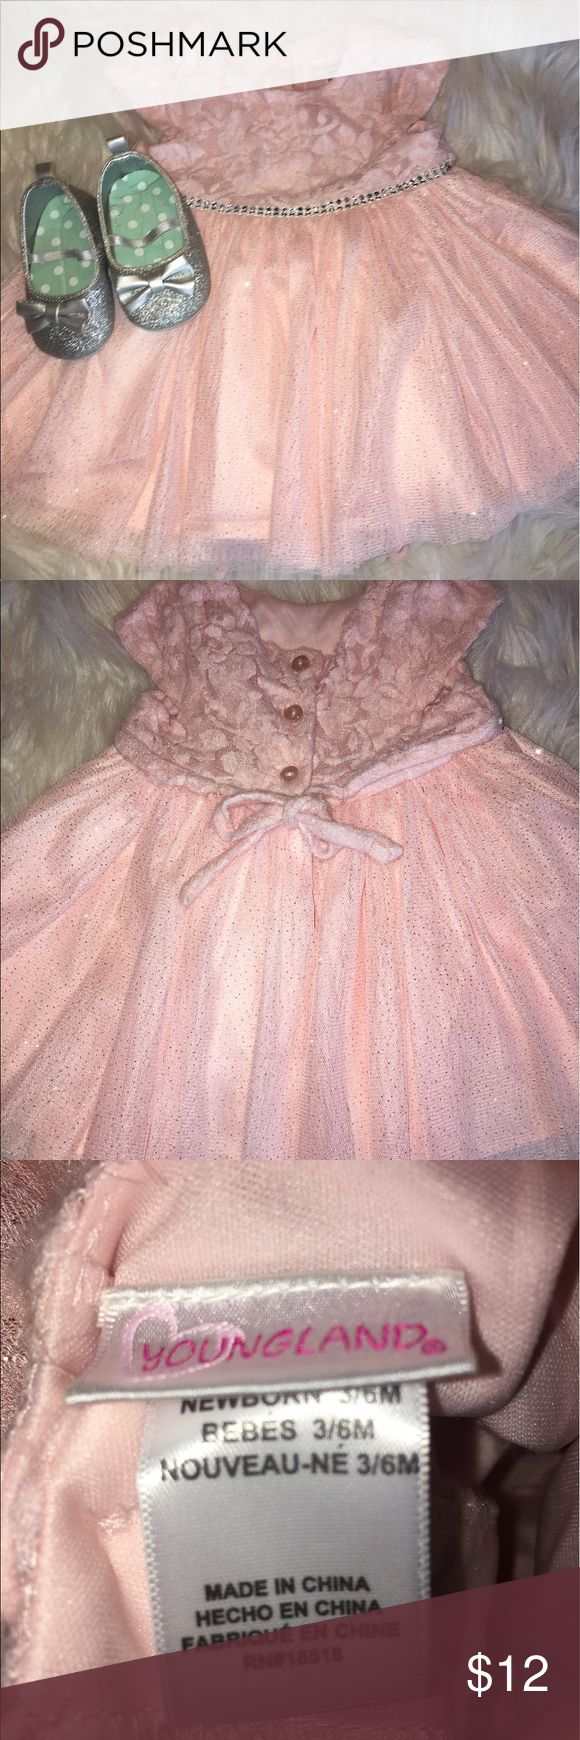 Baby clothes, pink sparkly dress and shoes Pretty dress and shoes, never used Youngland Dresses Formal